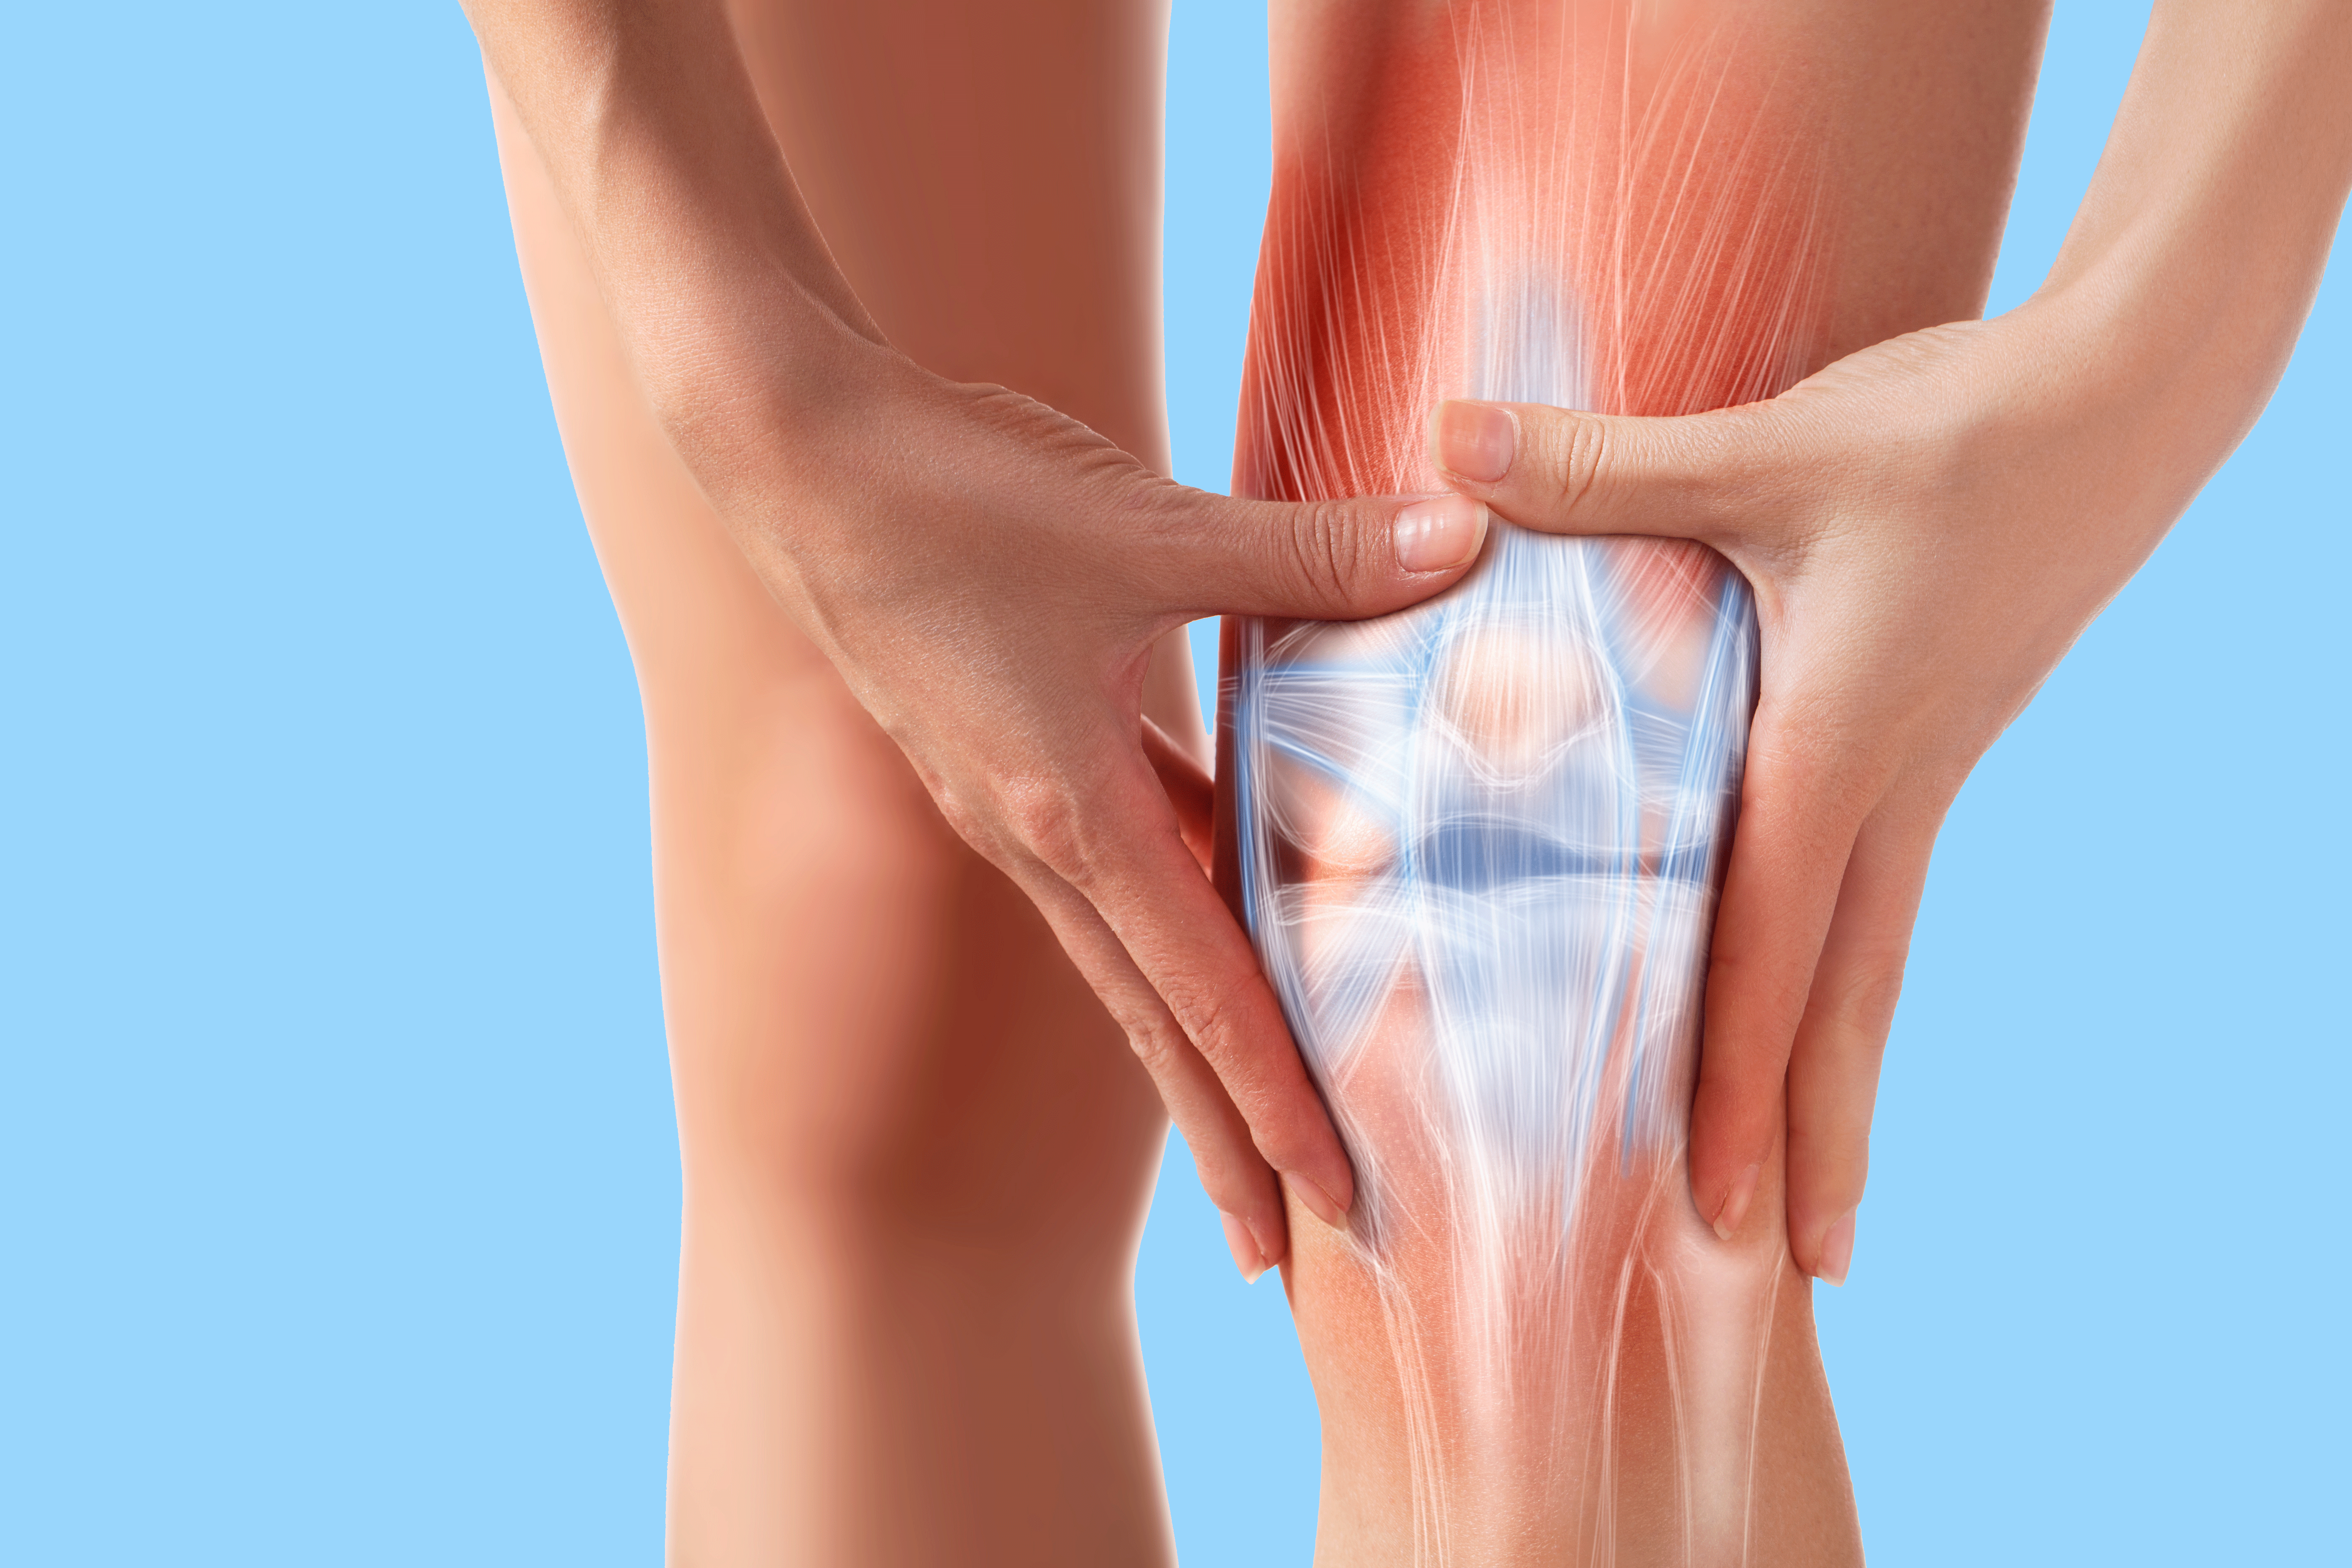 If you're wanting to explore stem cells for knees and other minimally invasive pain treatments, consider booking an appointment with a top Harvard pain doctor.